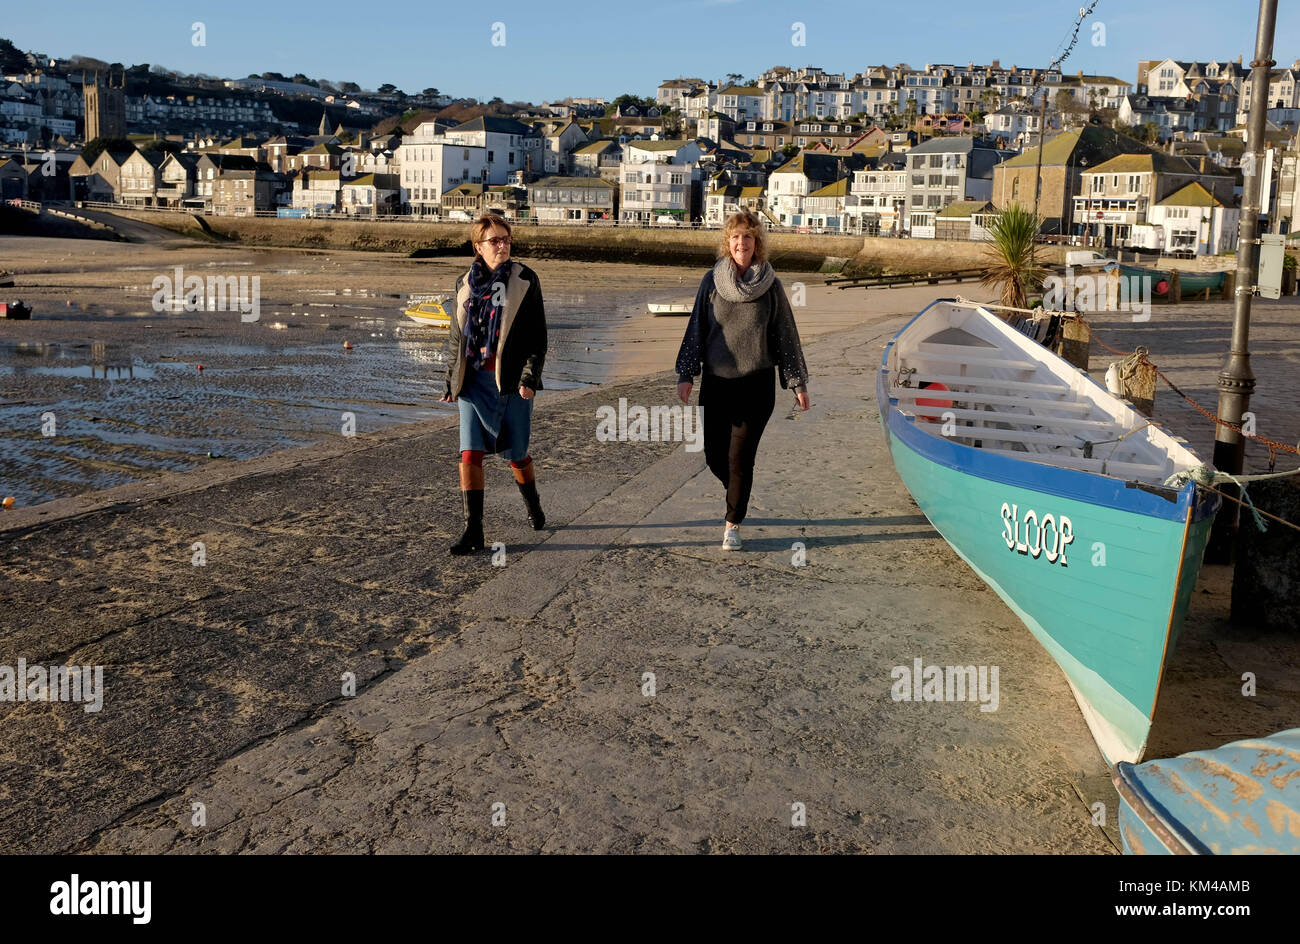 Cornish Gig rowing boat on the harbour at St Ives Cornwall UK - Stock Image